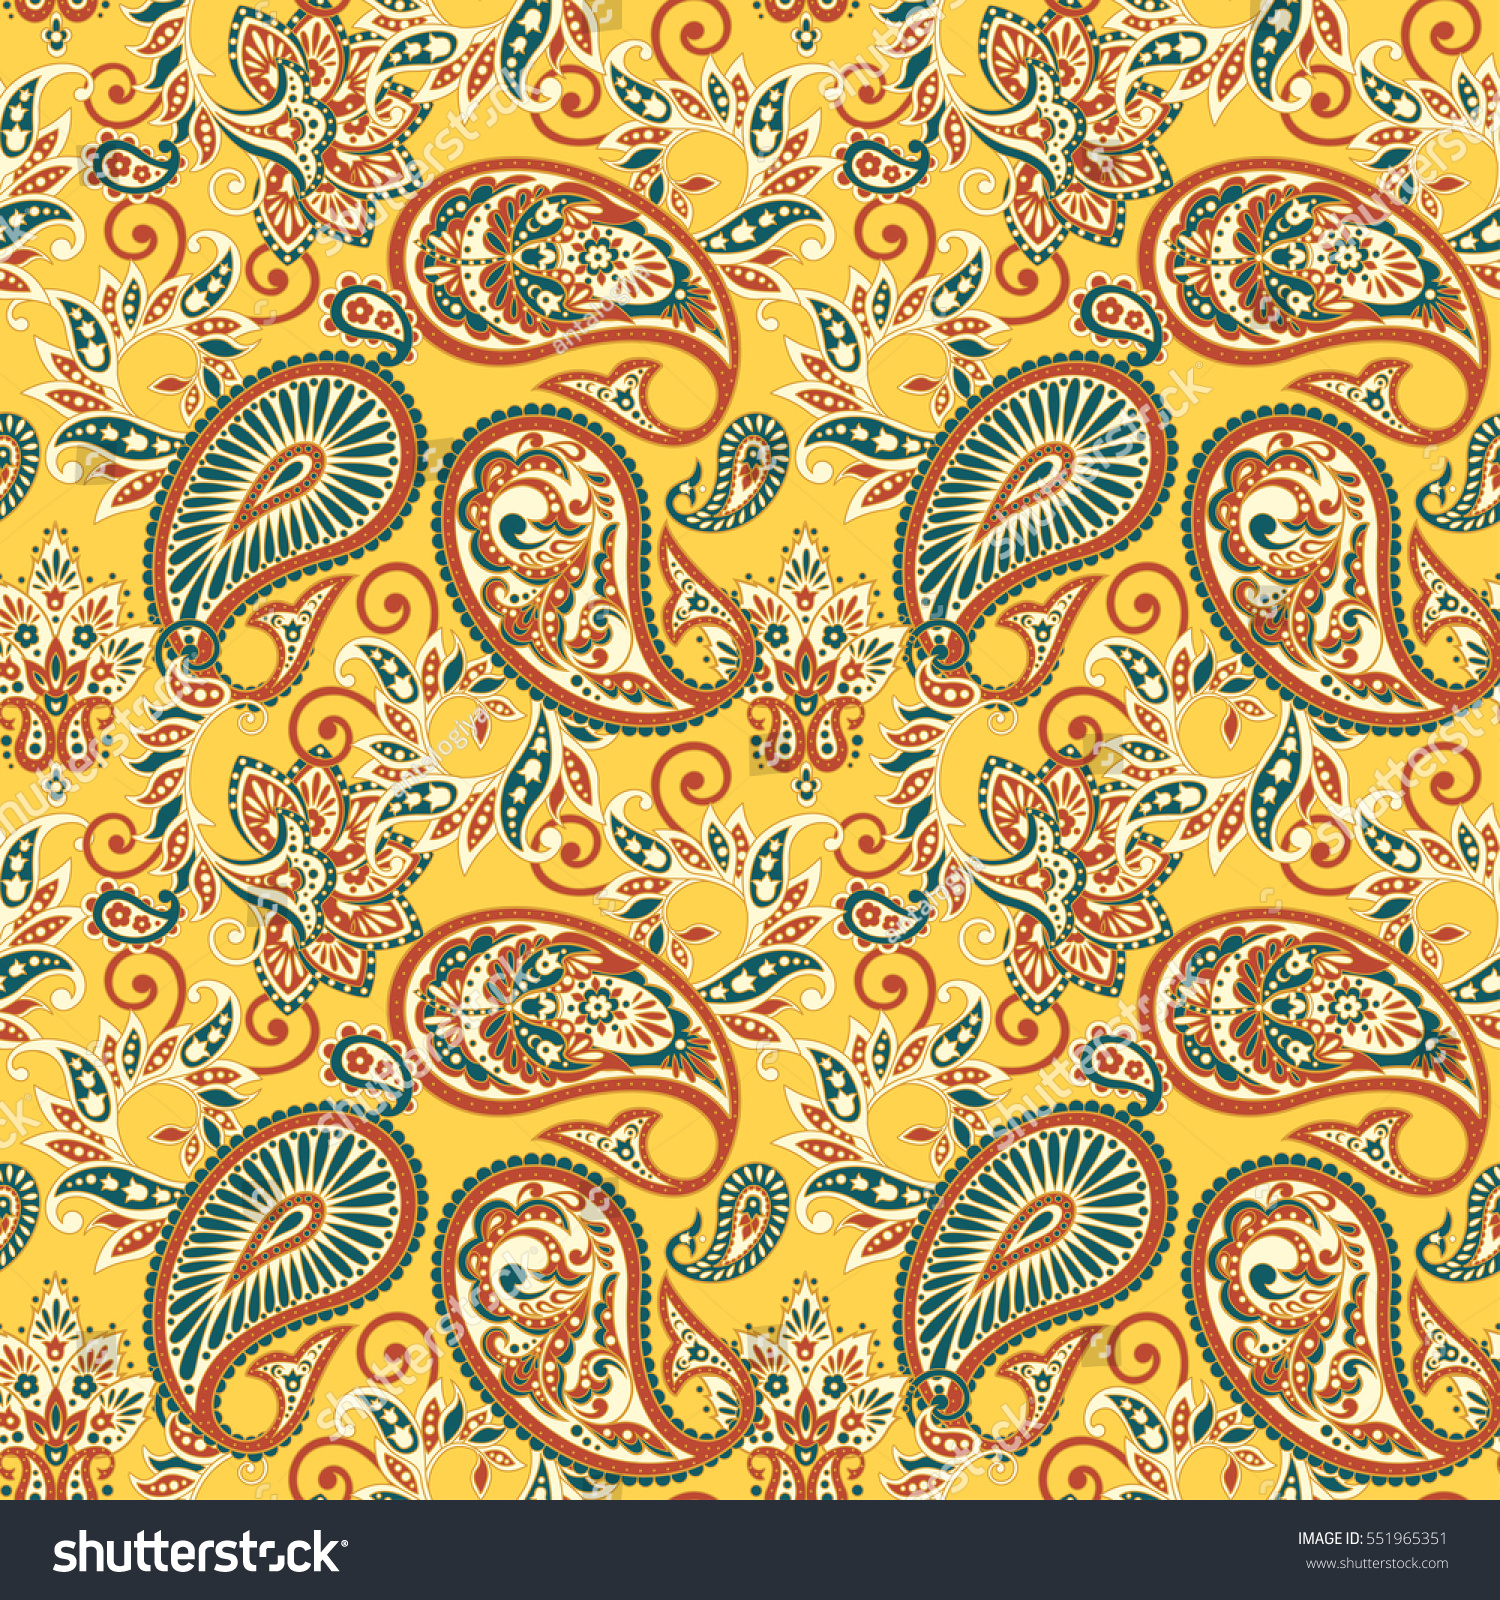 Paisley Floral Ornamental Pattern Seamless Arabic Stock Vector HD ... for Indian Fabric Designs Patterns  55jwn